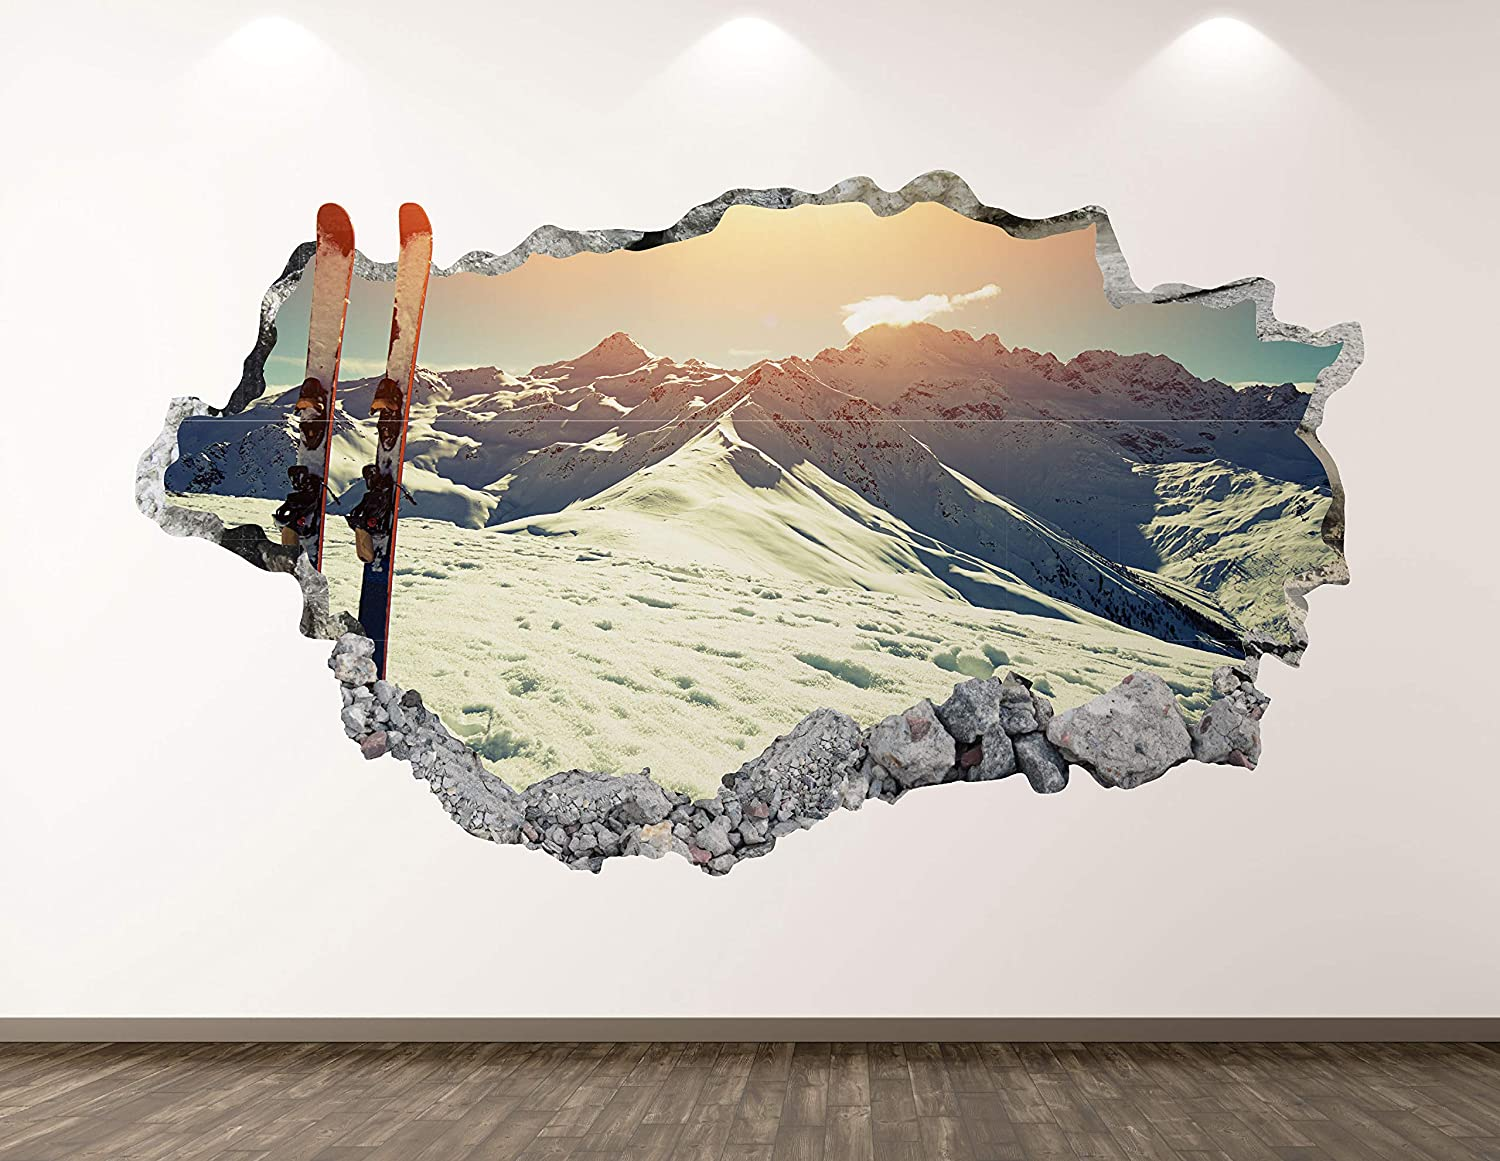 West Mountain Directly managed store Ski Wall Decal Art Max 79% OFF Decor Sport Sticker 3D Smashed